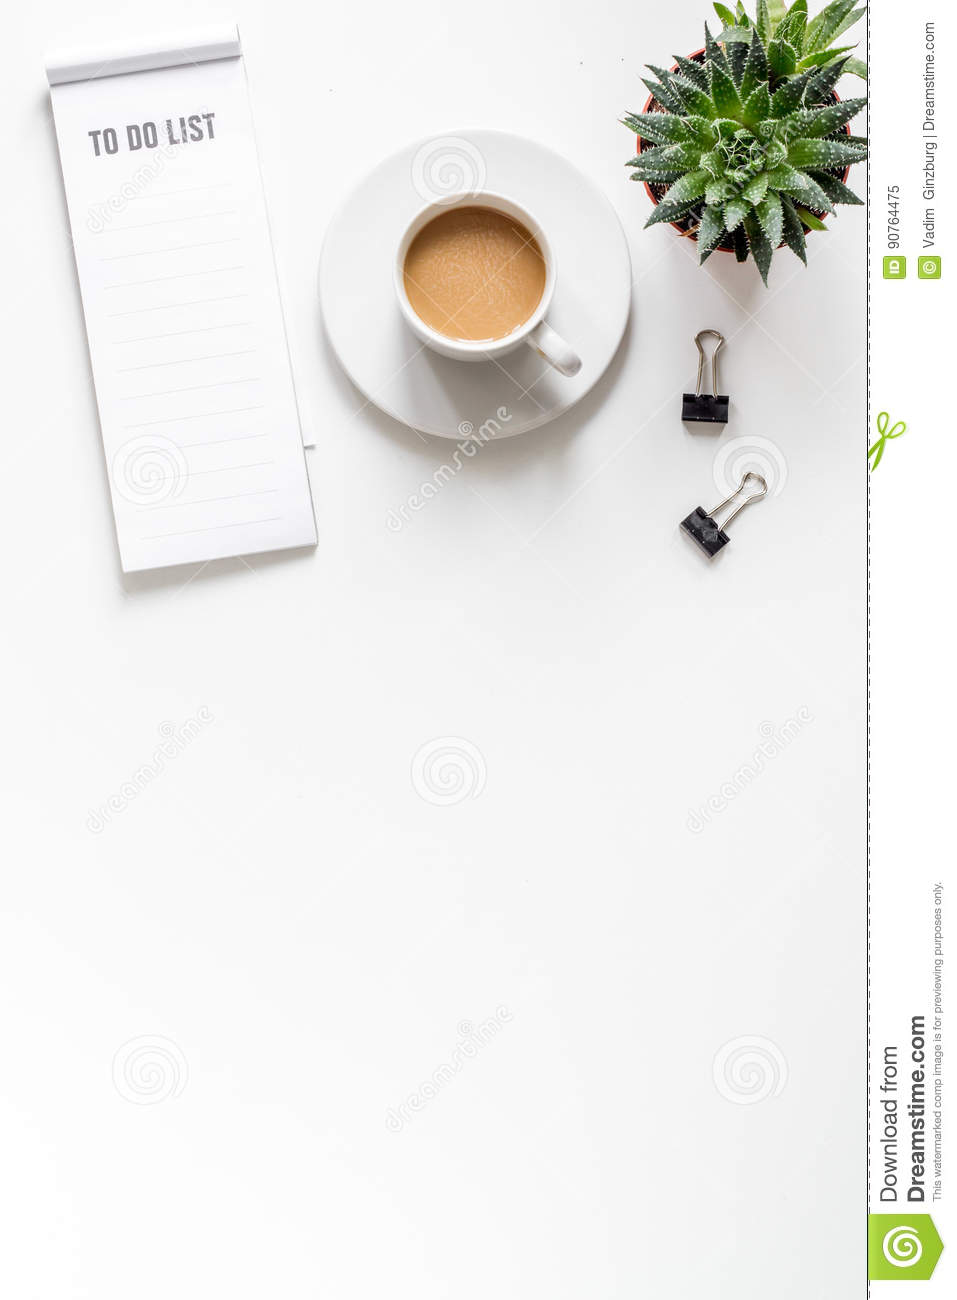 business plan development with list and coffee desk background top